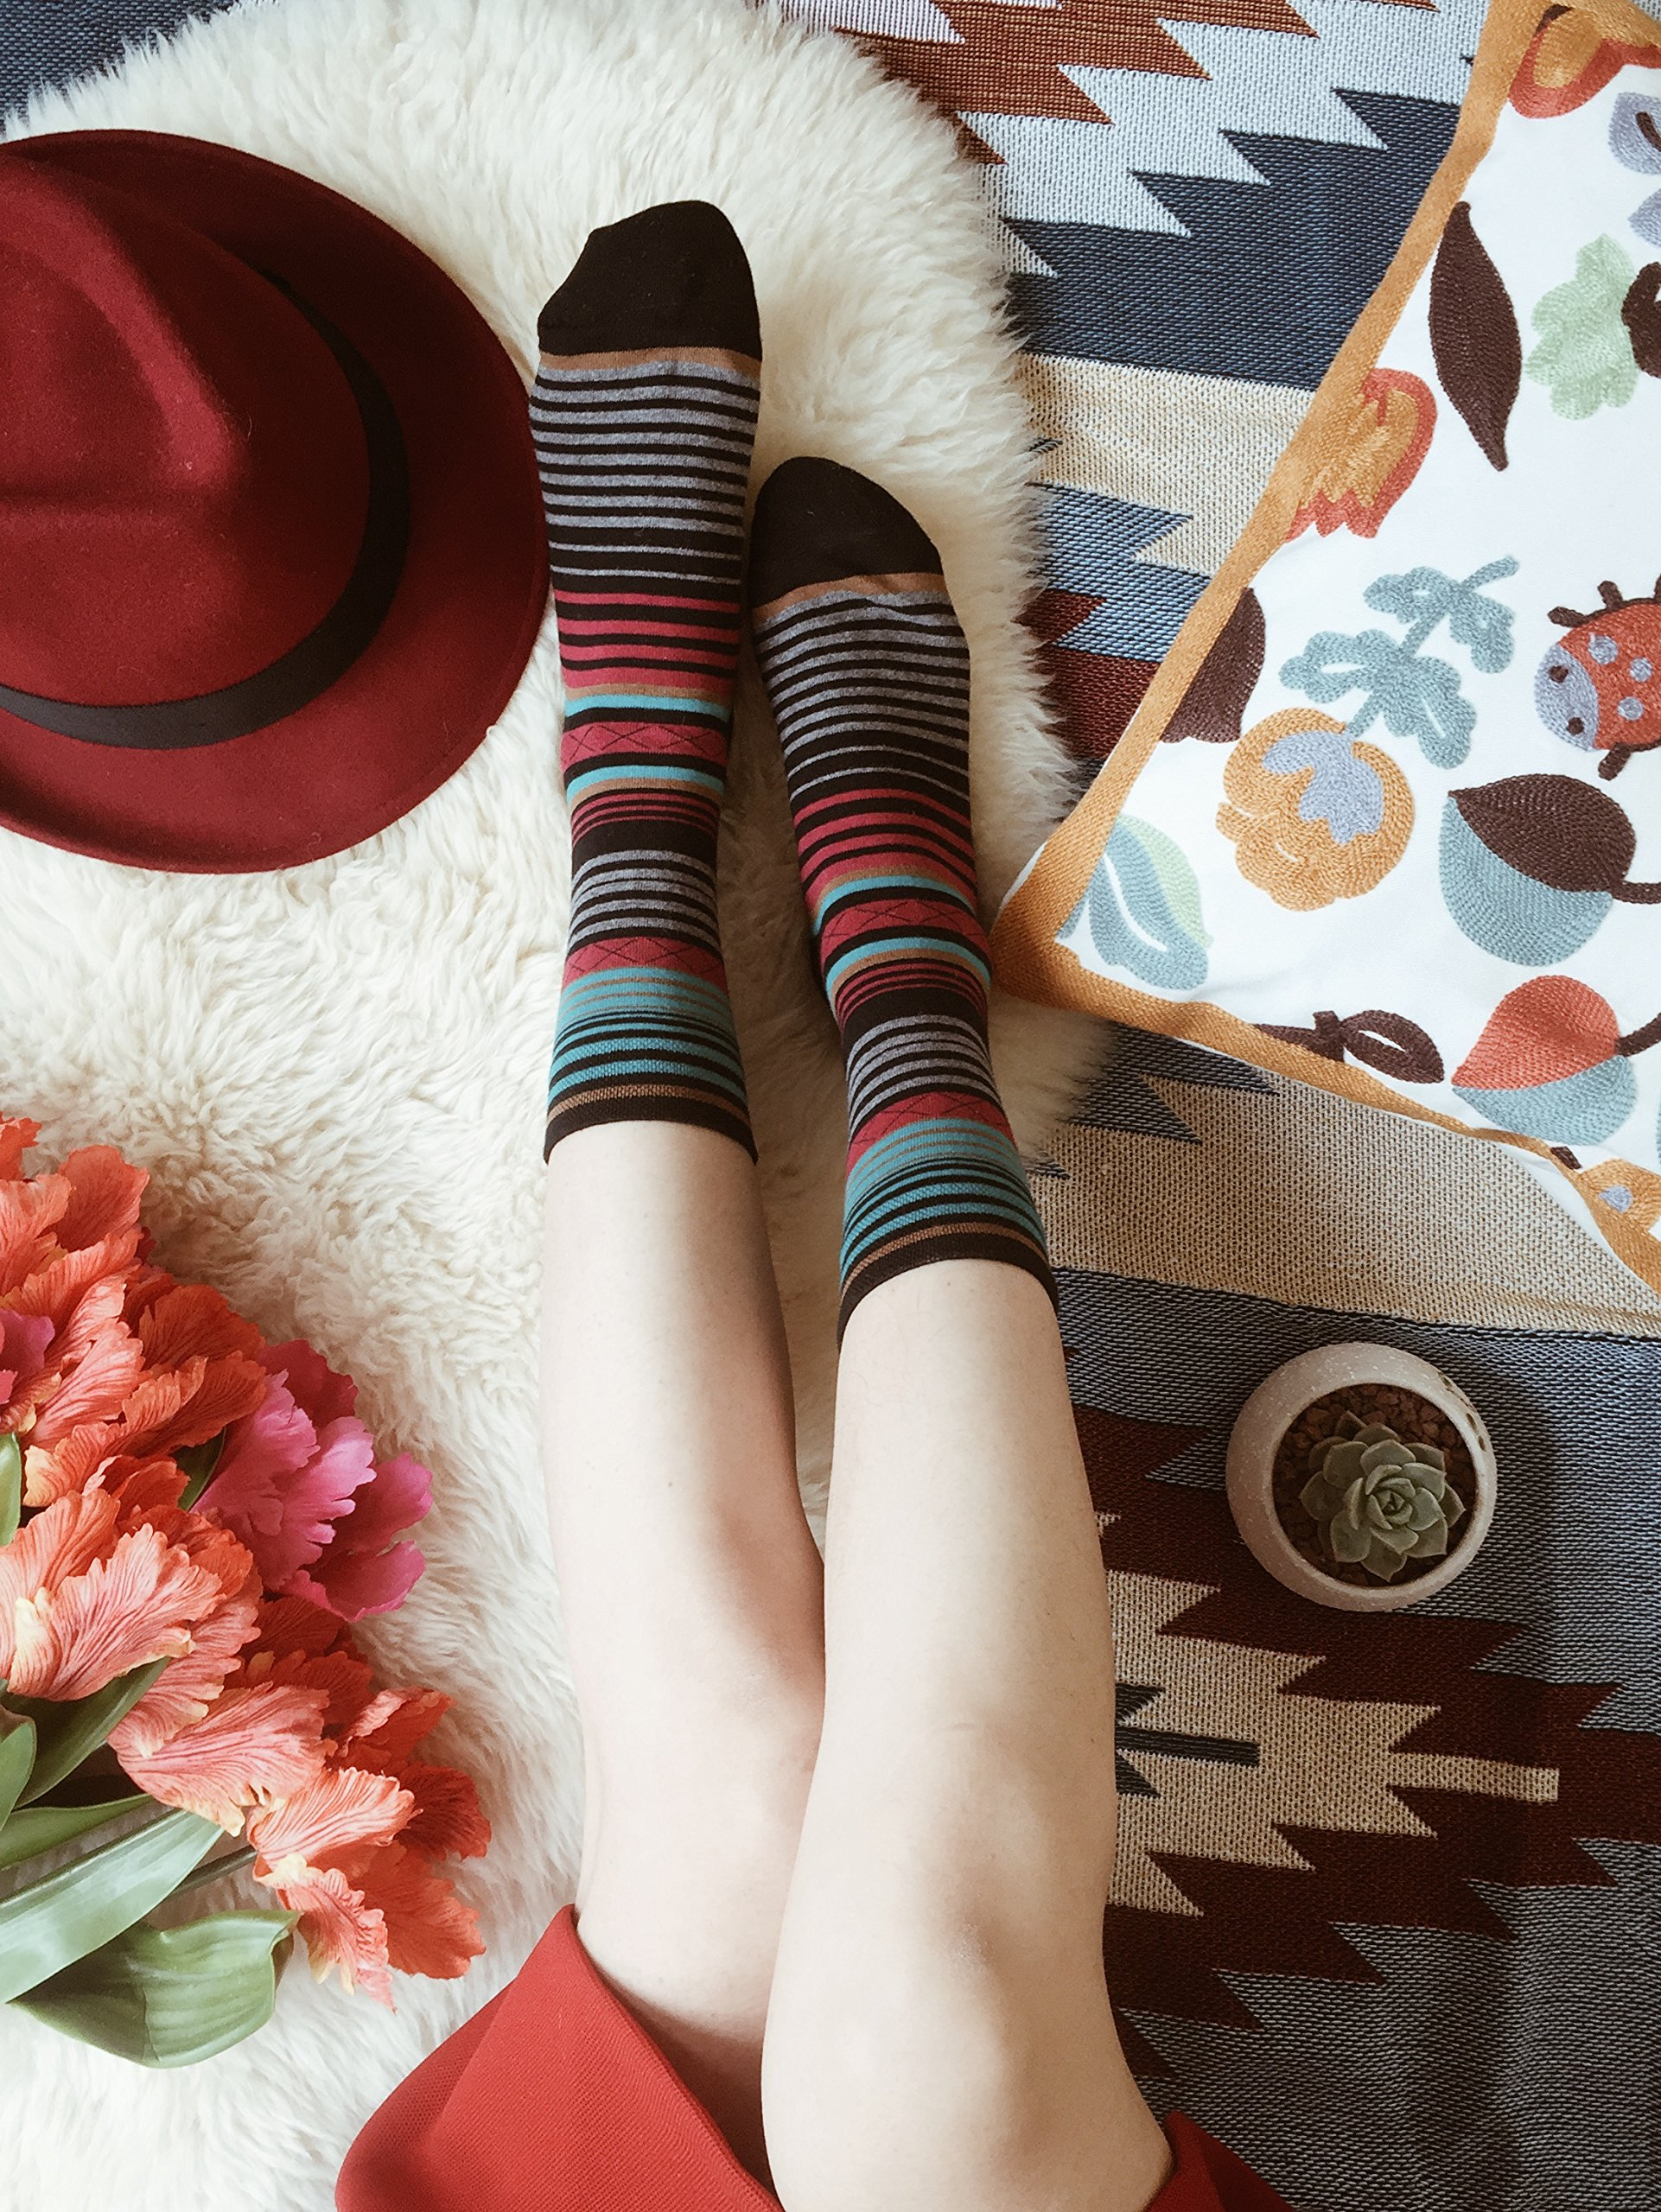 Tselected Women's Classic Dress Socks Colorful Warm Funny Casual Crew Vintage Style US Size 6-11 5 Pack by Tselected (Image #7)